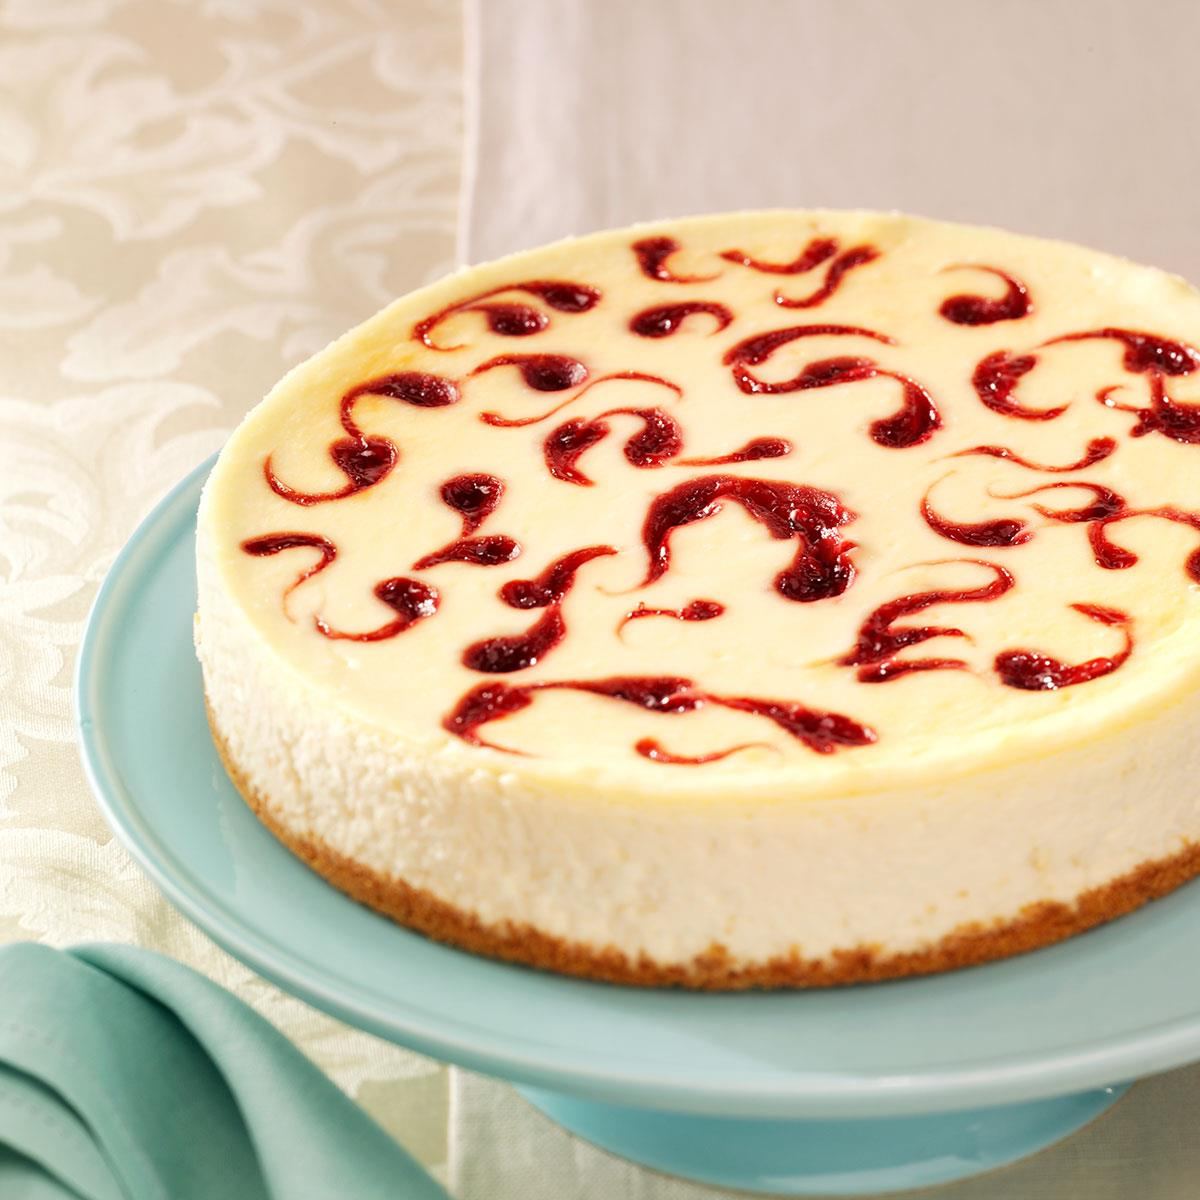 Best Home Baked Cheesecake Recipe